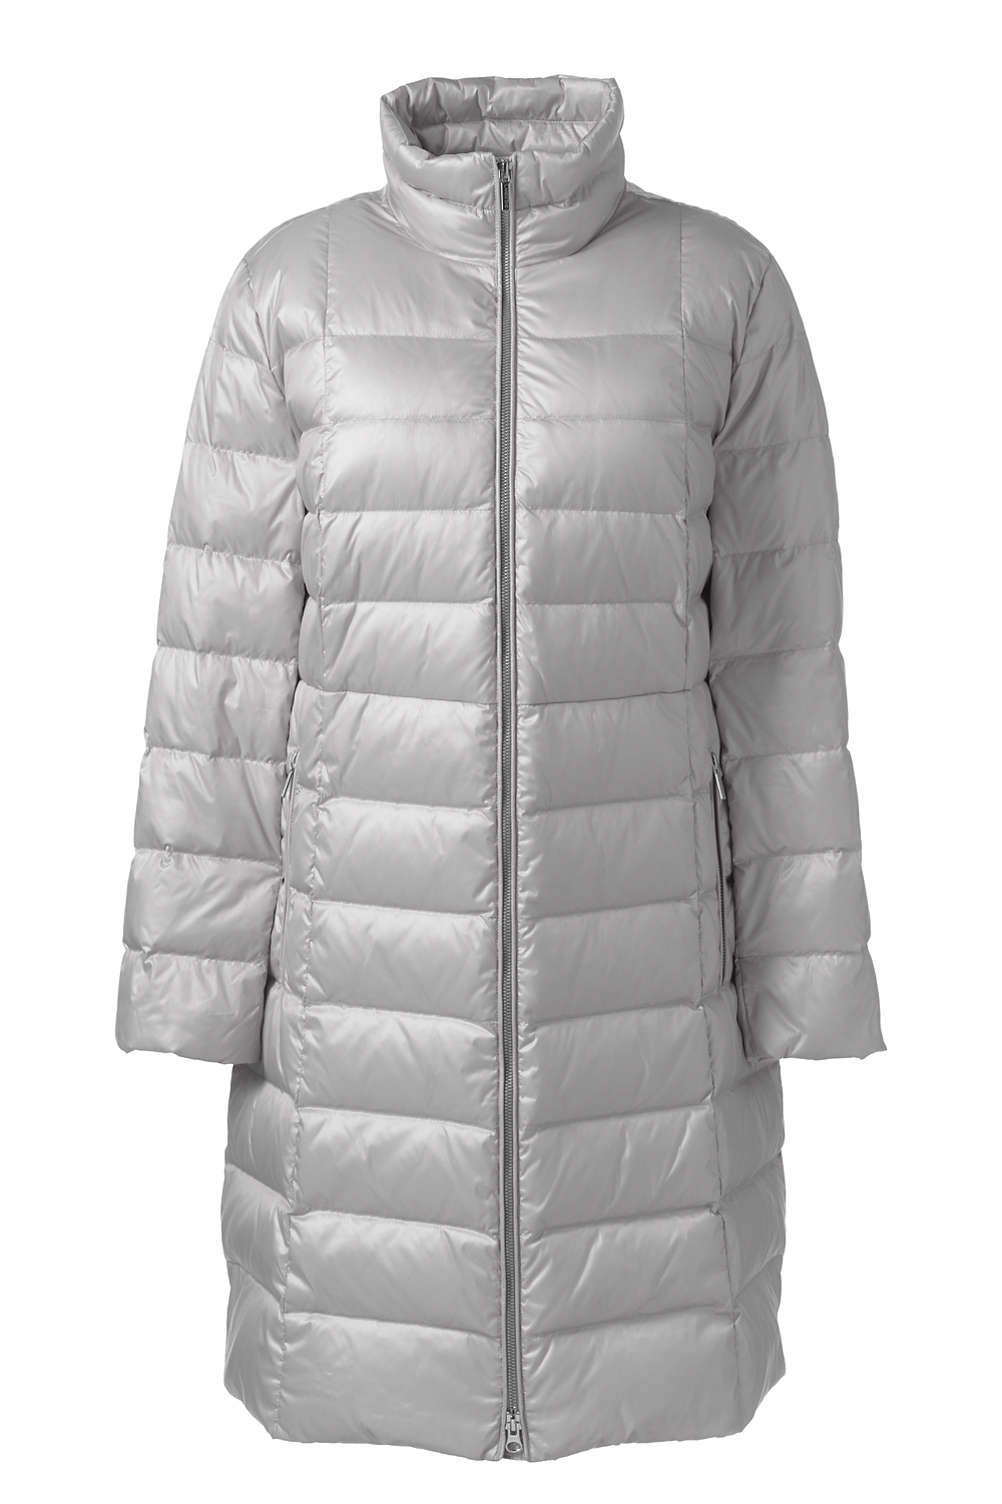 443ff9eee9 Women s Plus Size Lightweight Down Coat from Lands  End